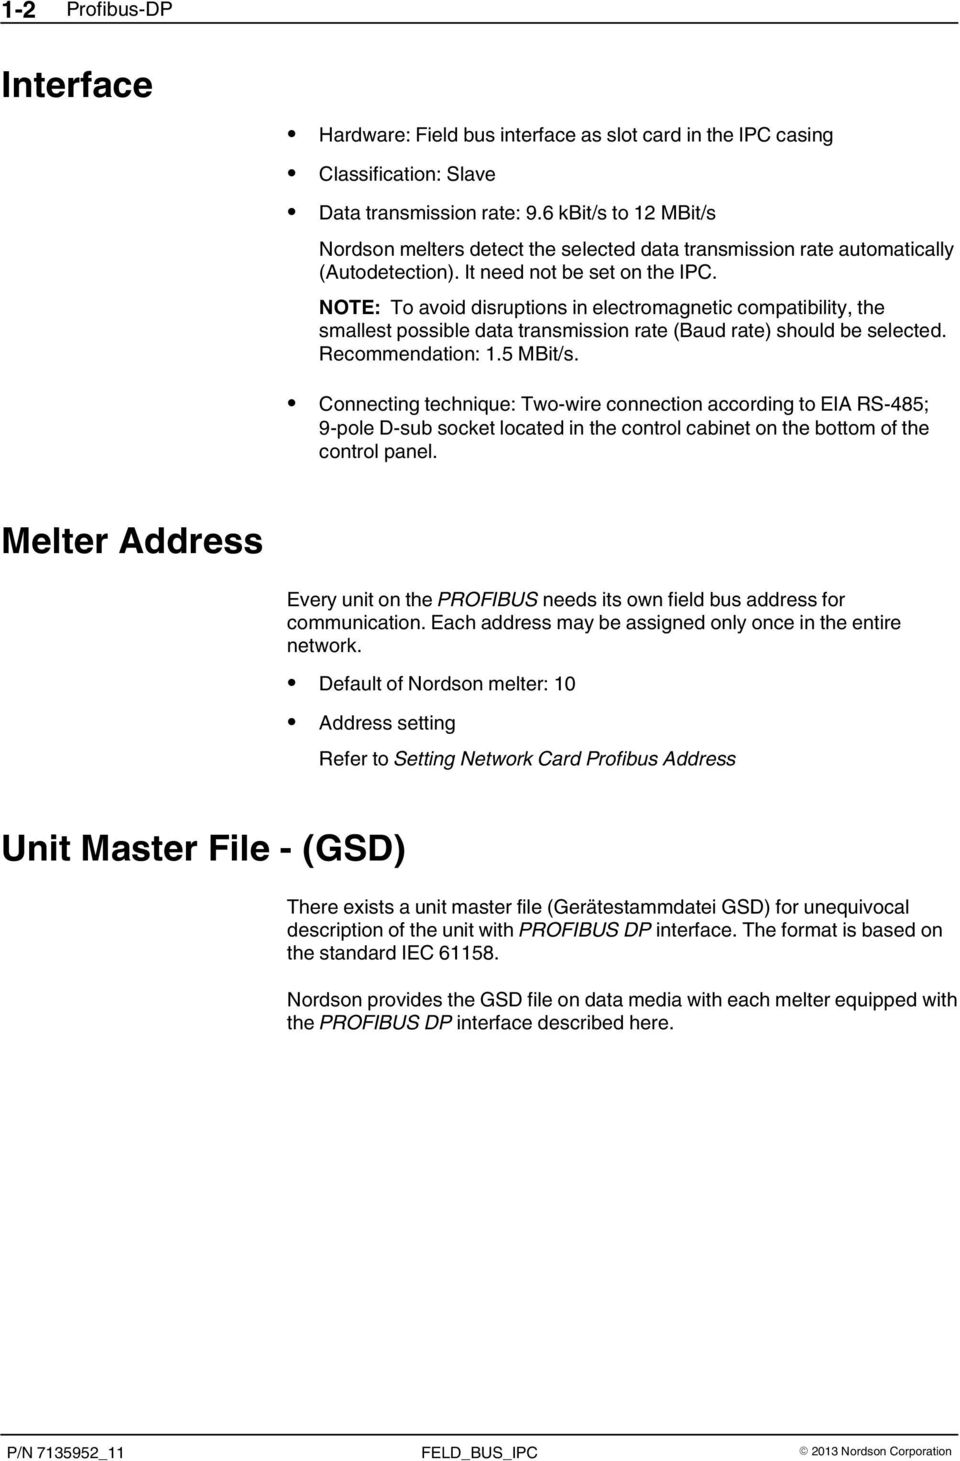 Field Bus on Nordson Melters with IPC - PDF